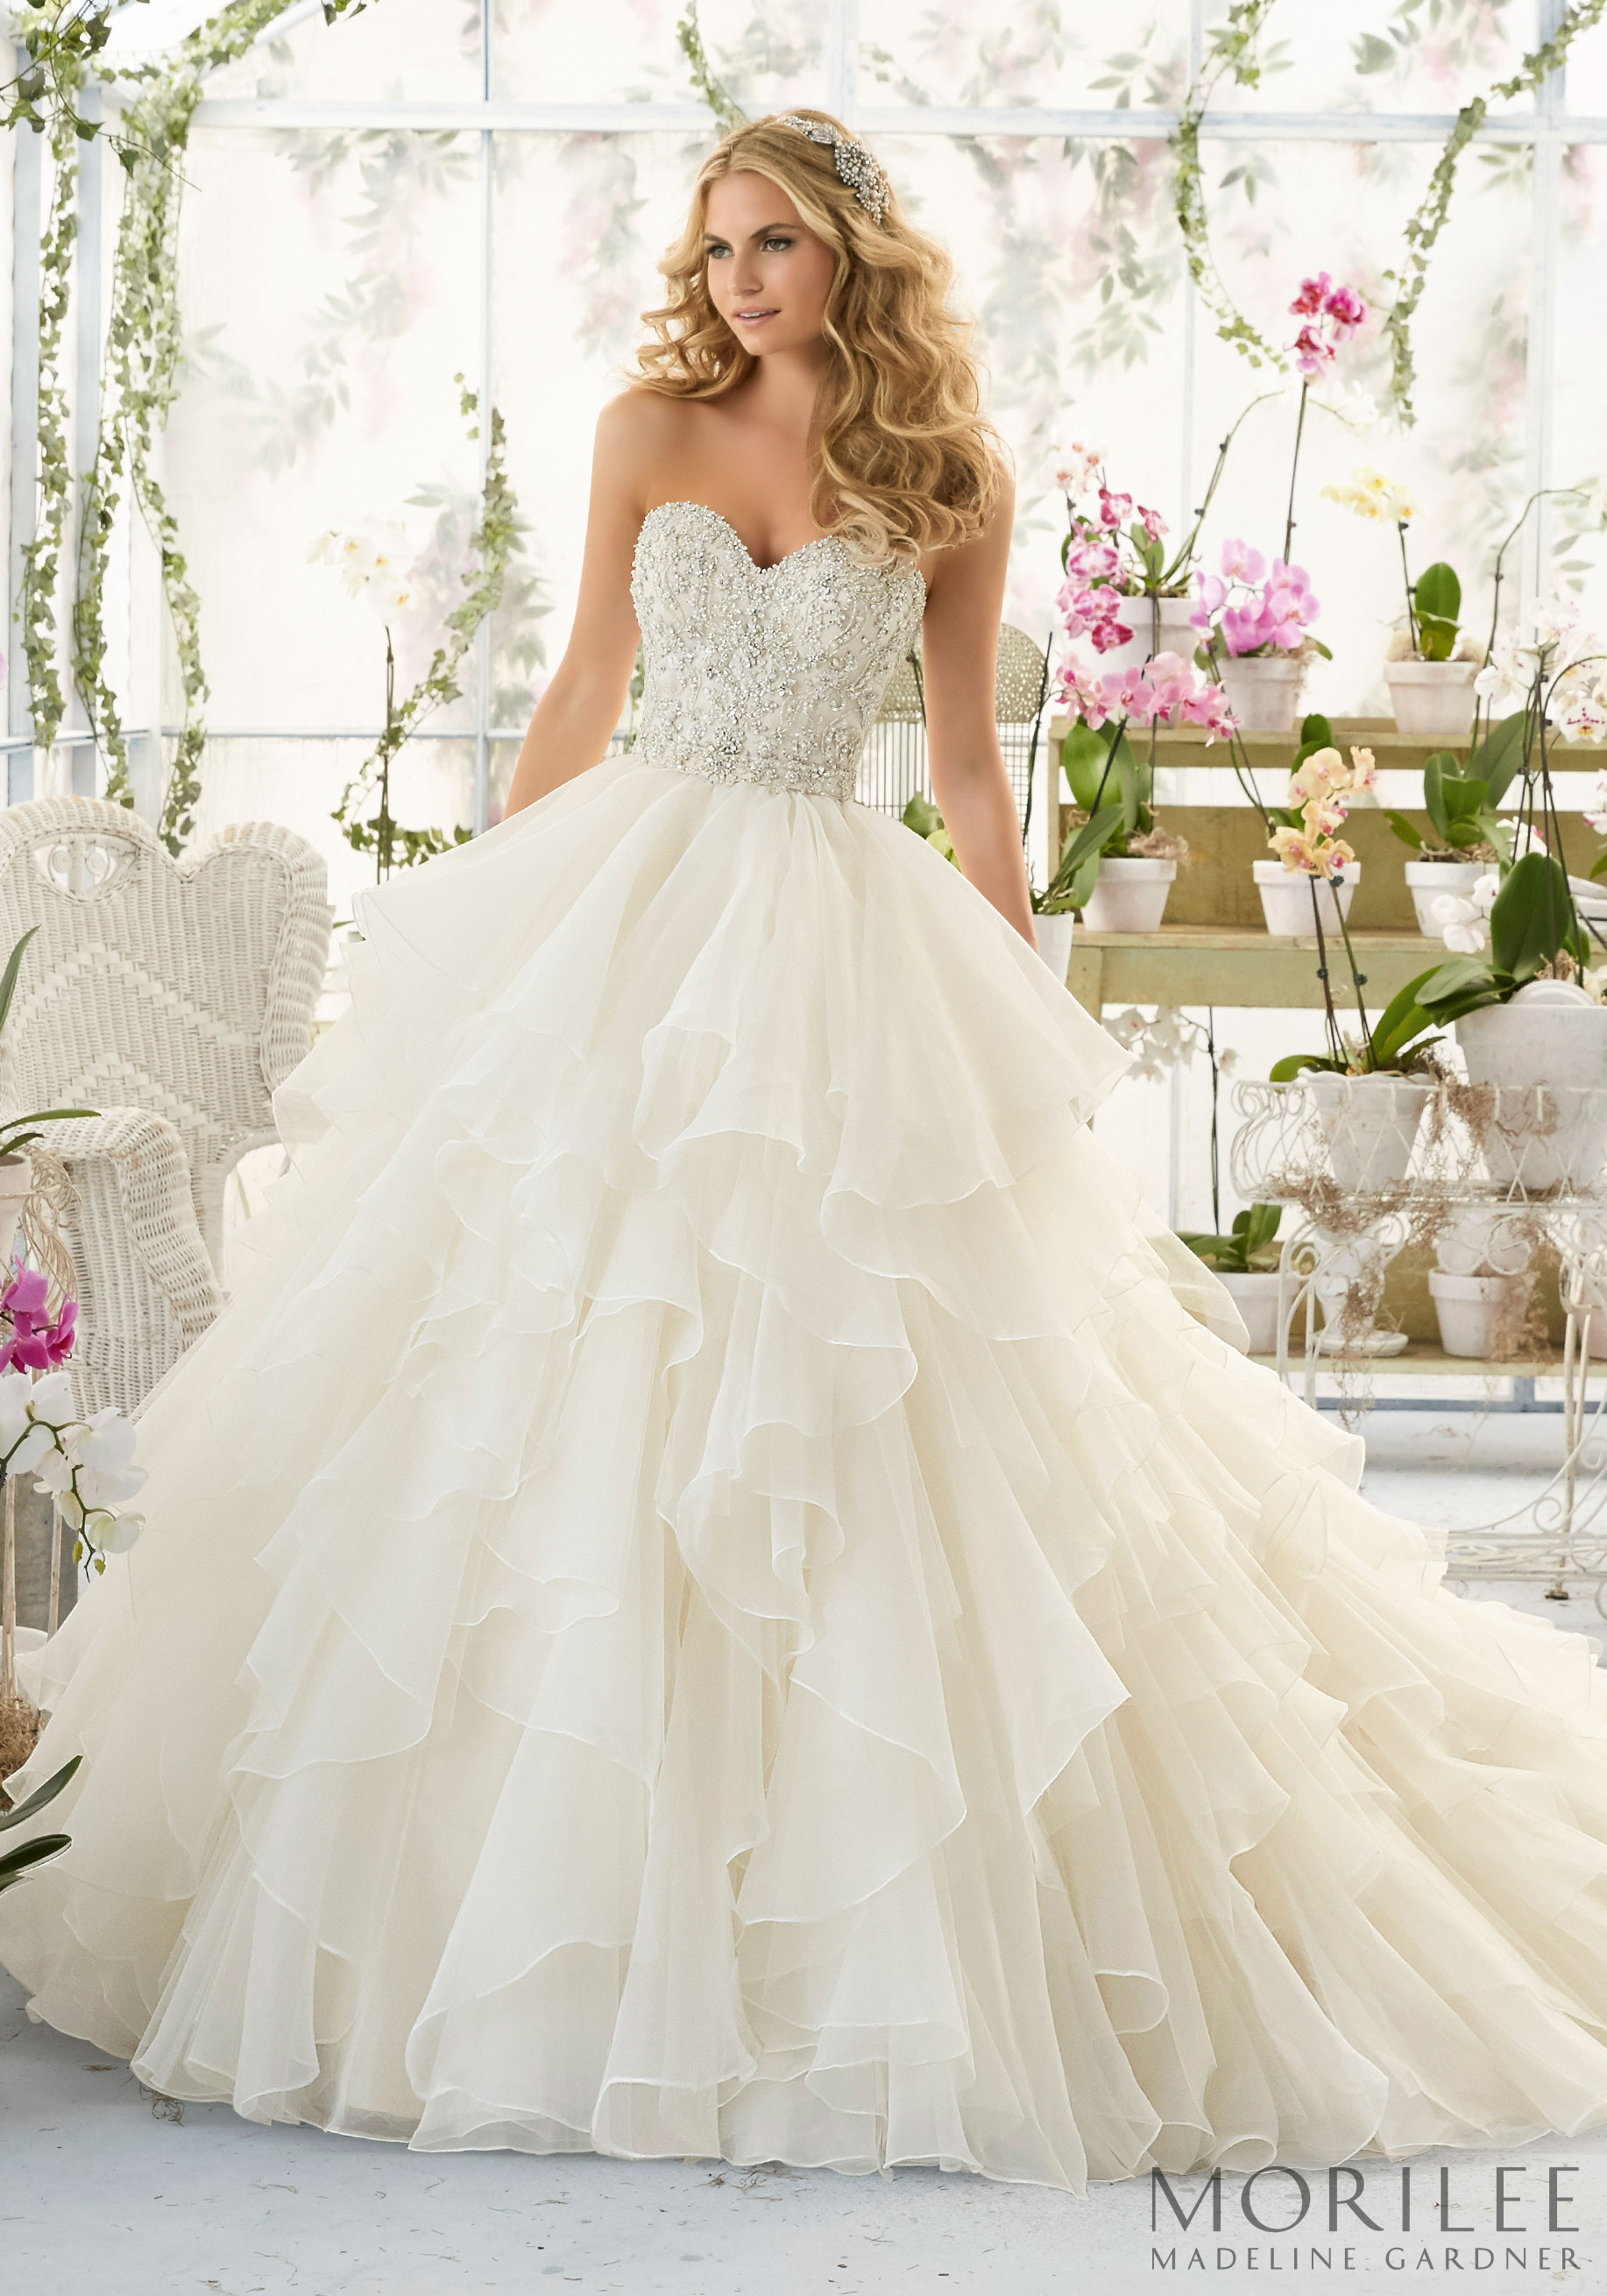 Morilee | Madeline Gardner Wedding Dress. Make the ultimate ...